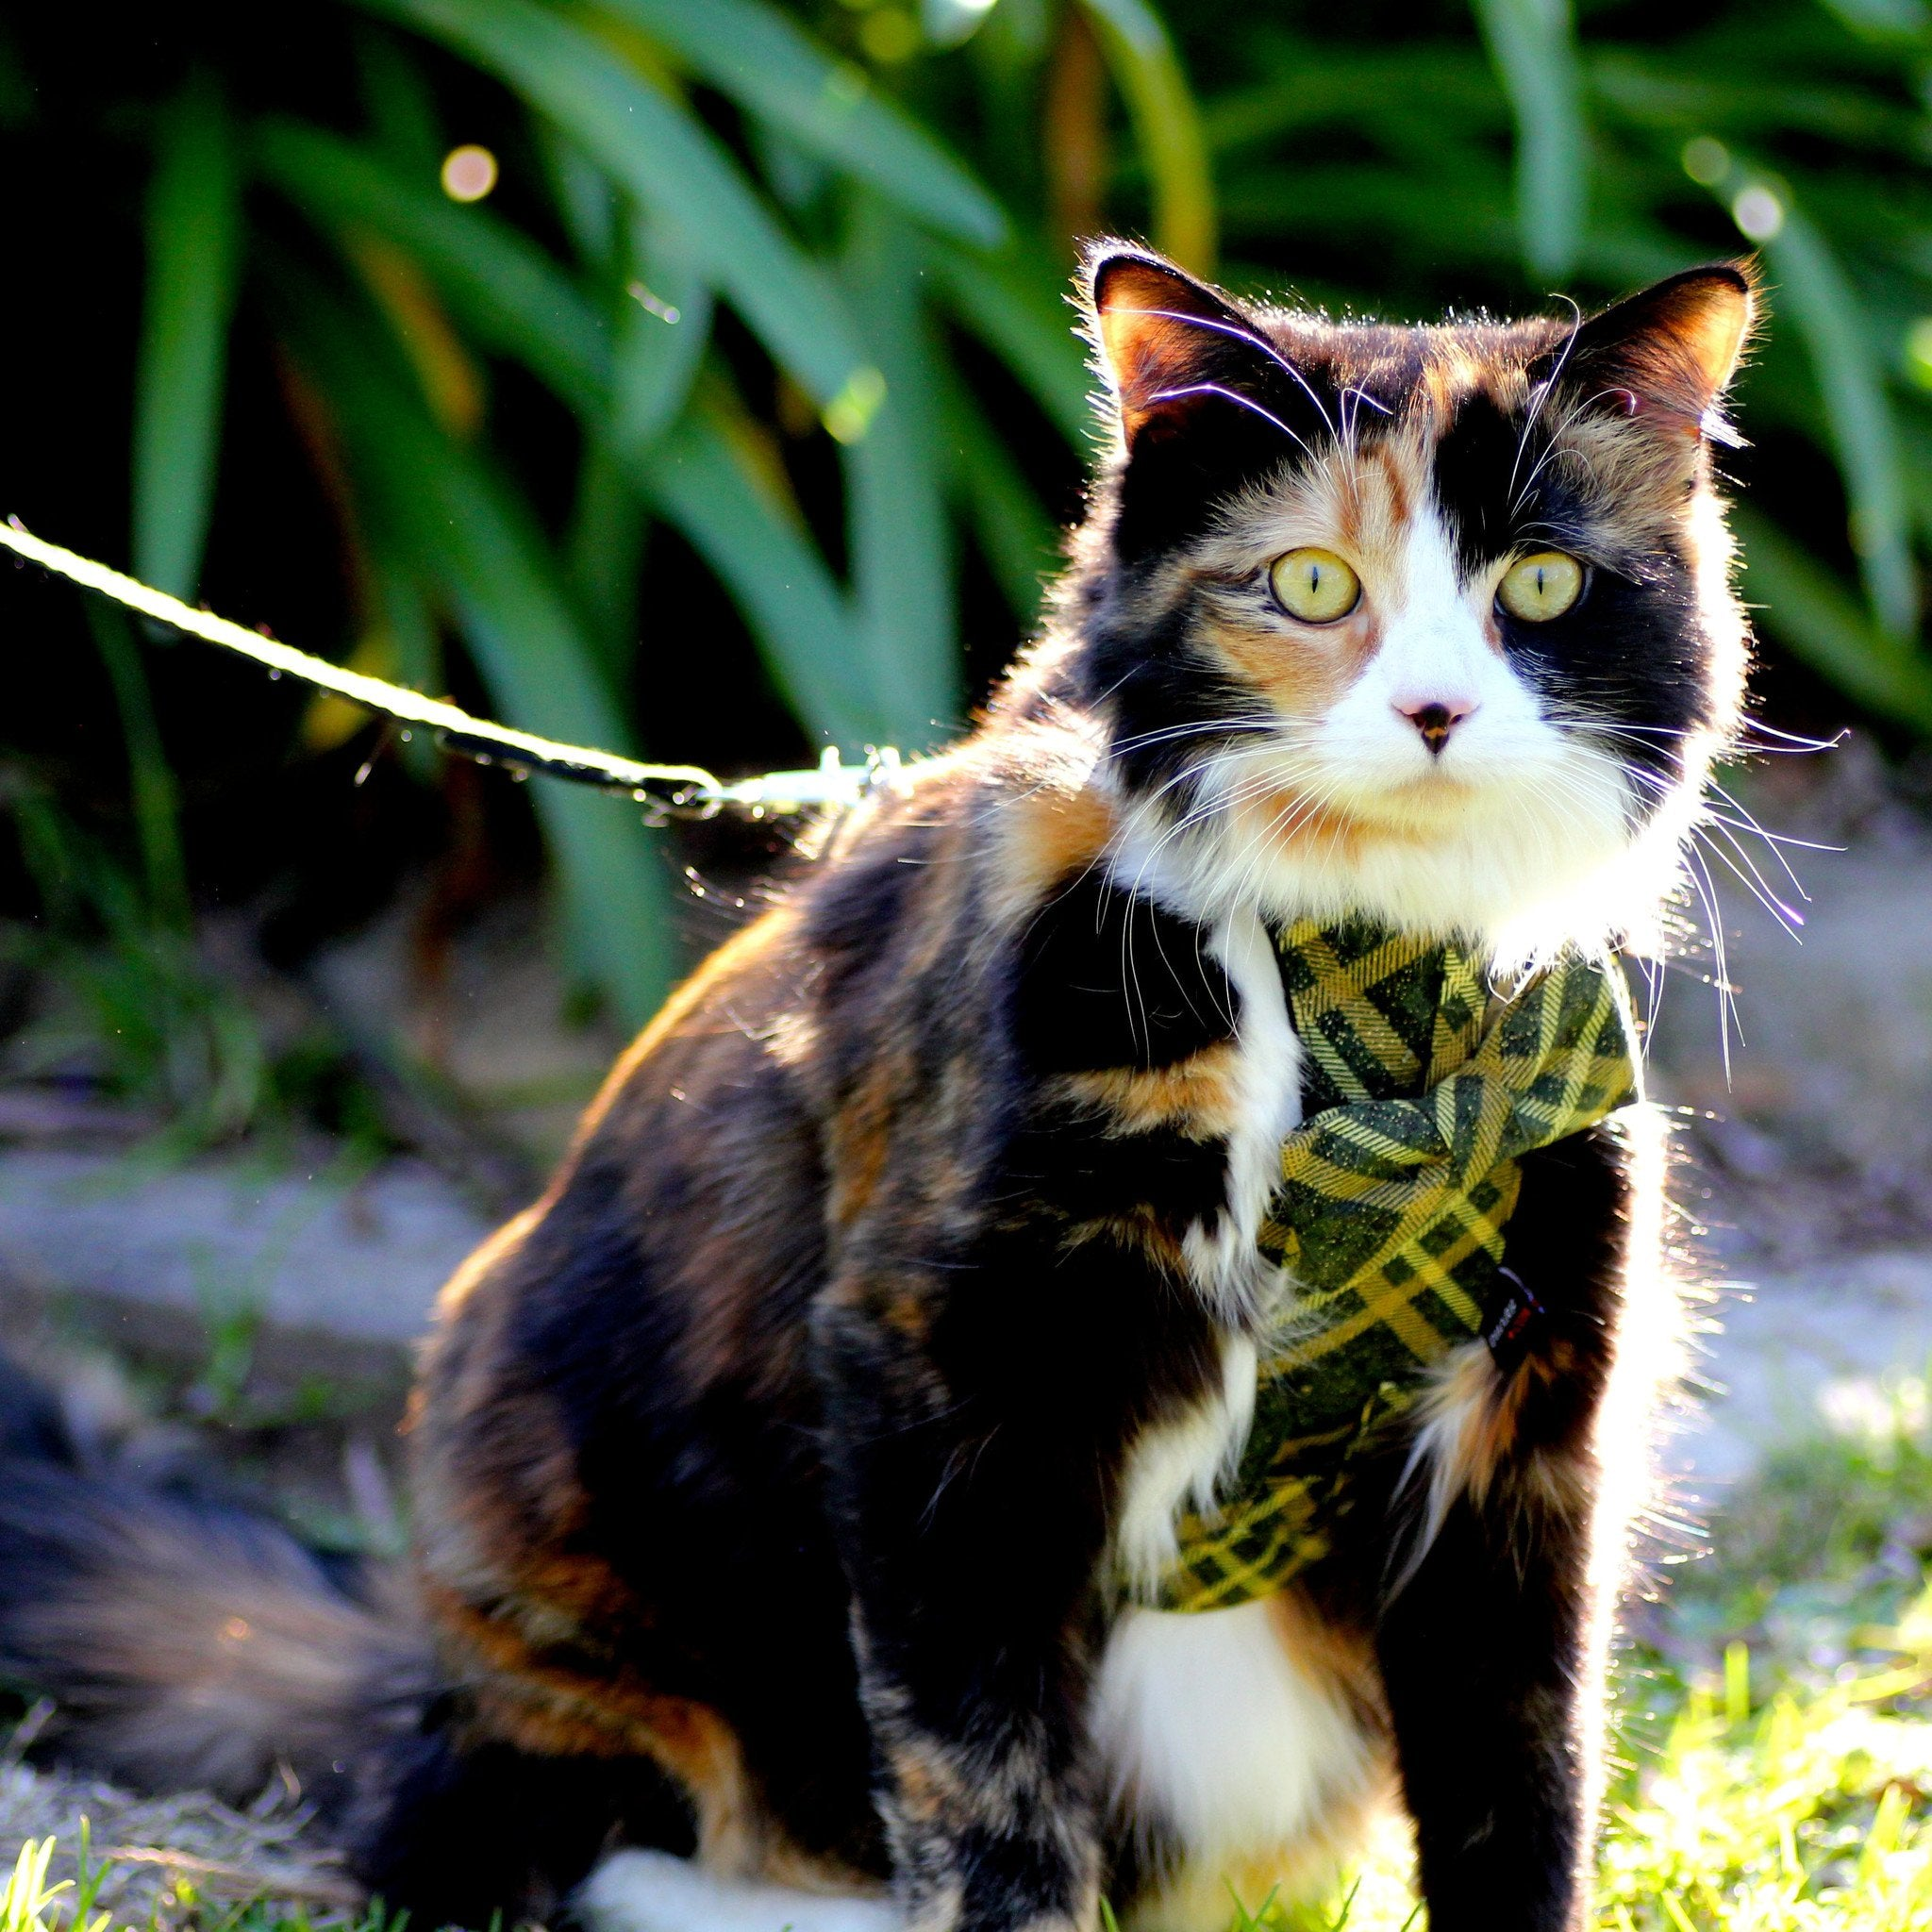 Cat Bow-tie Harness & Leash : Green & Gold Tartan - Dharf - 2